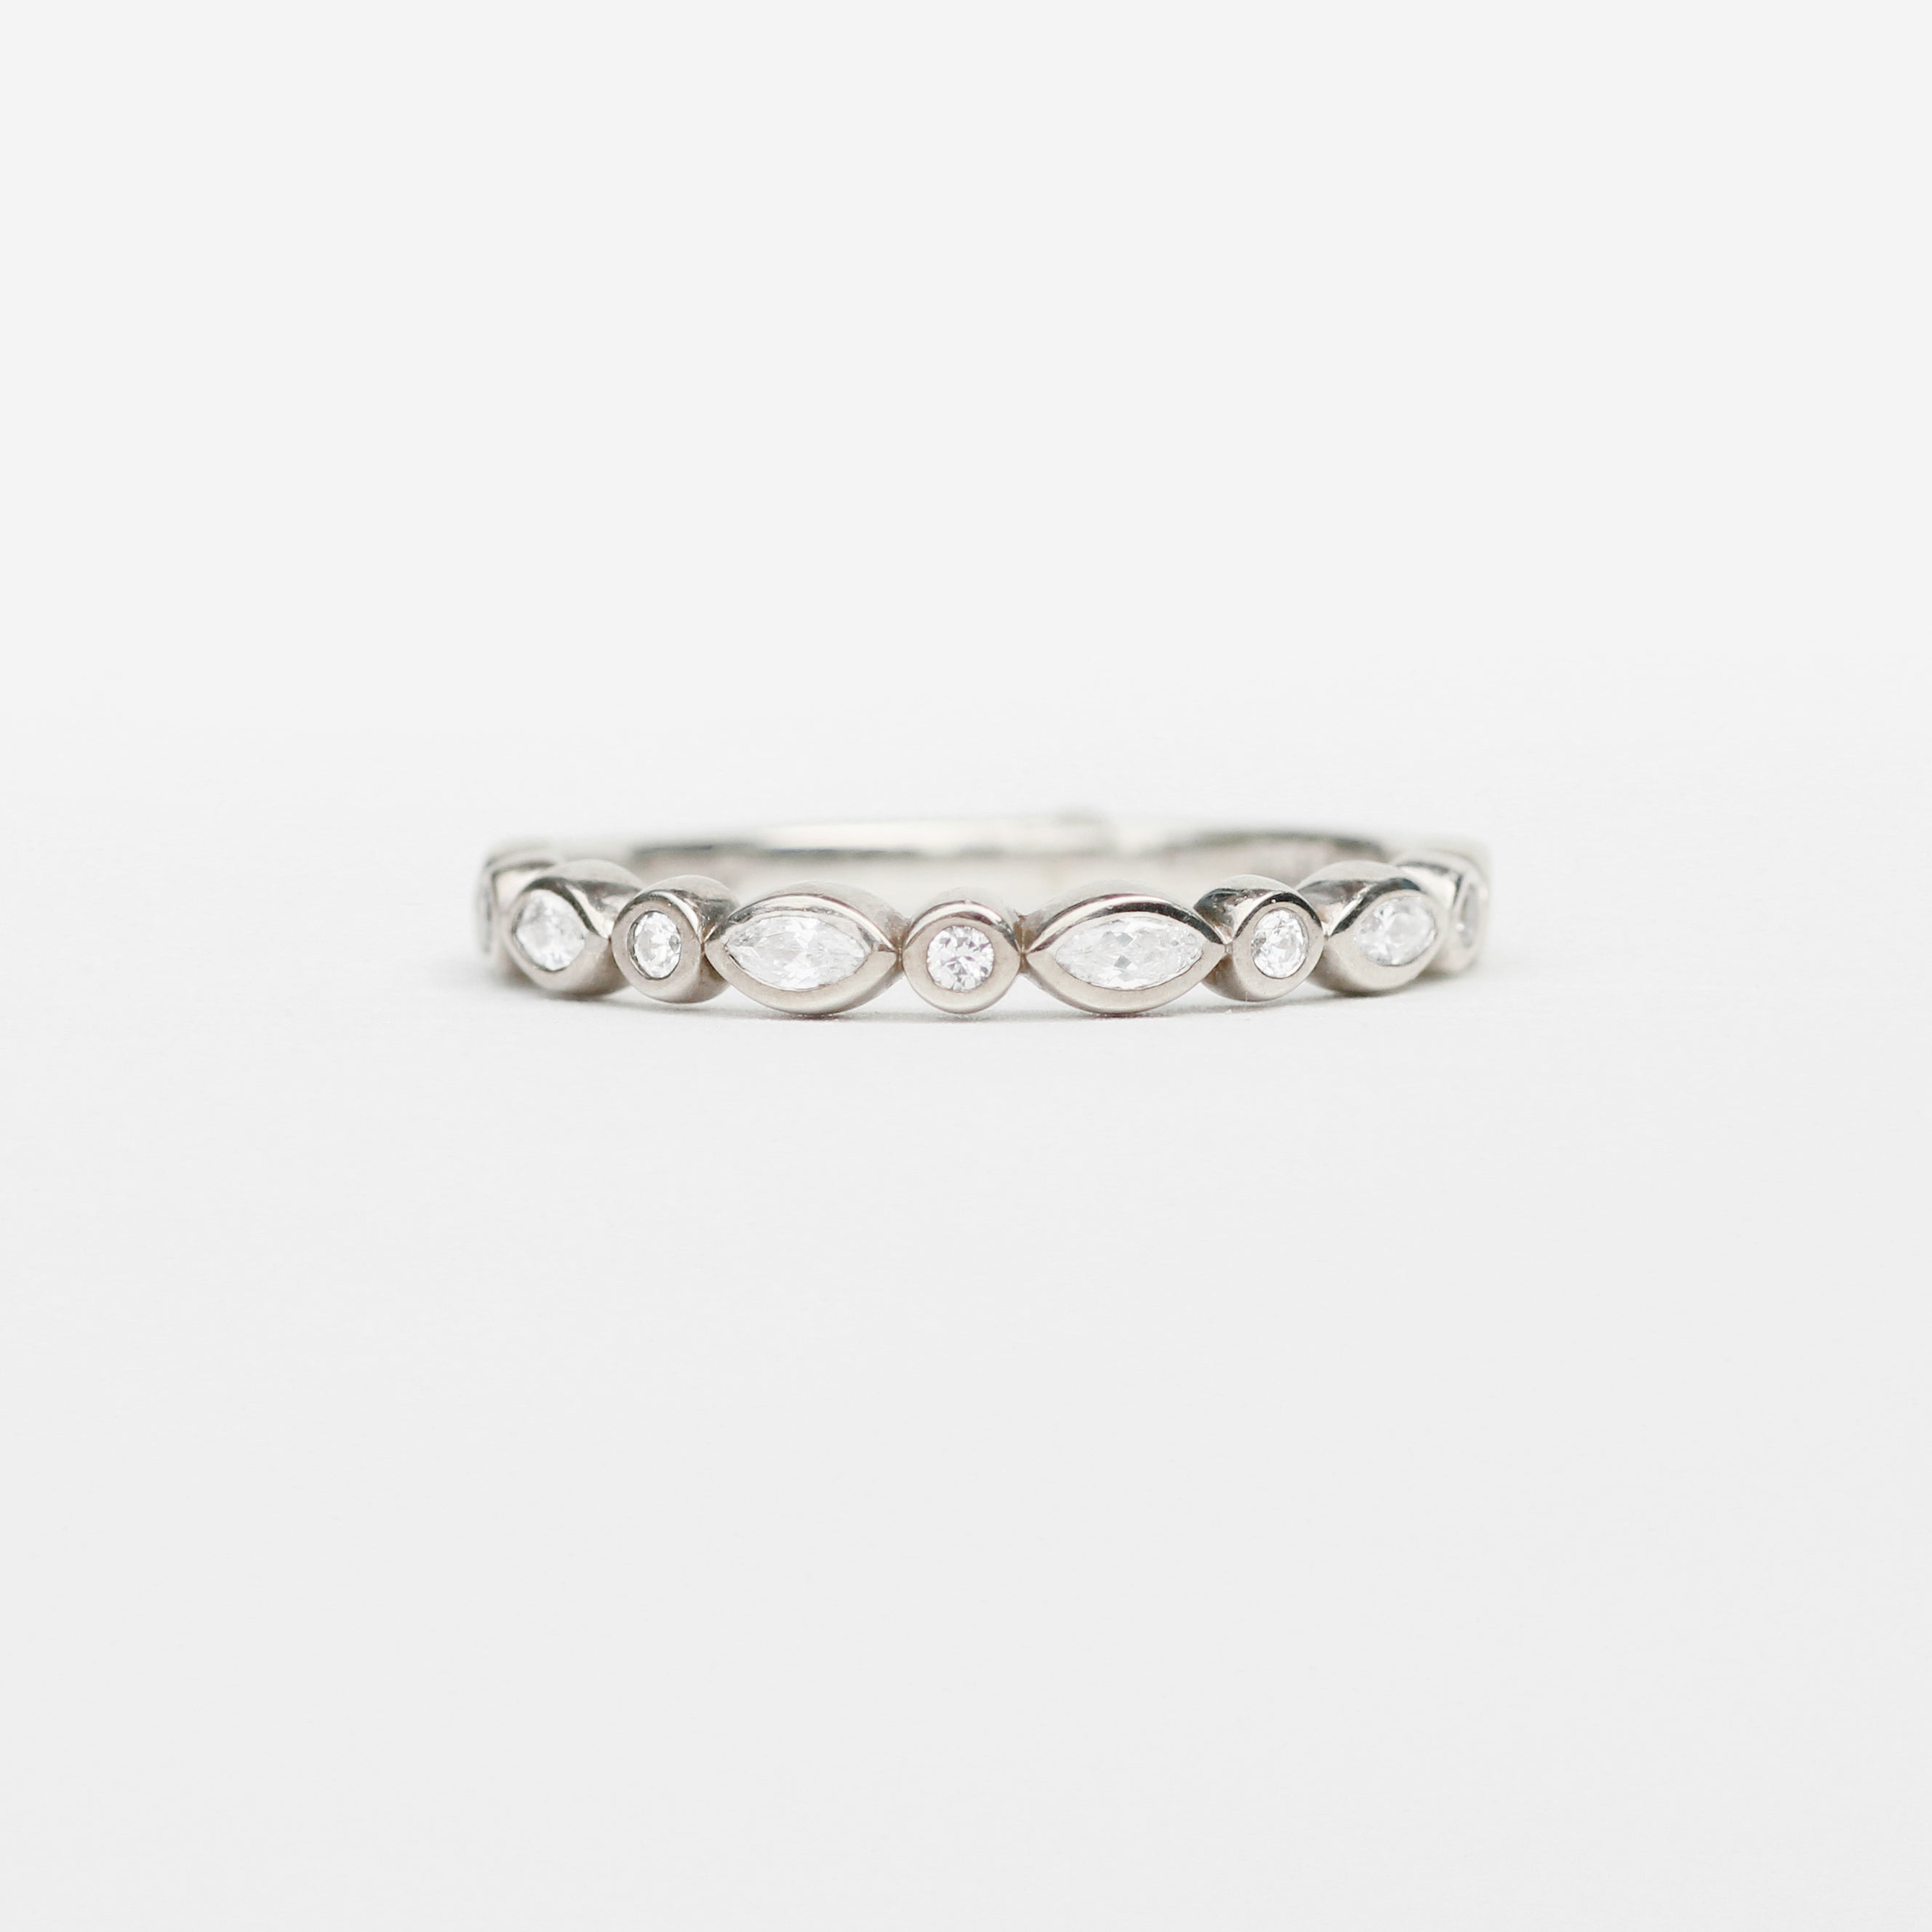 Ellyot band - diamonds in marquise and round cuts, bezel set - Your choice of metal